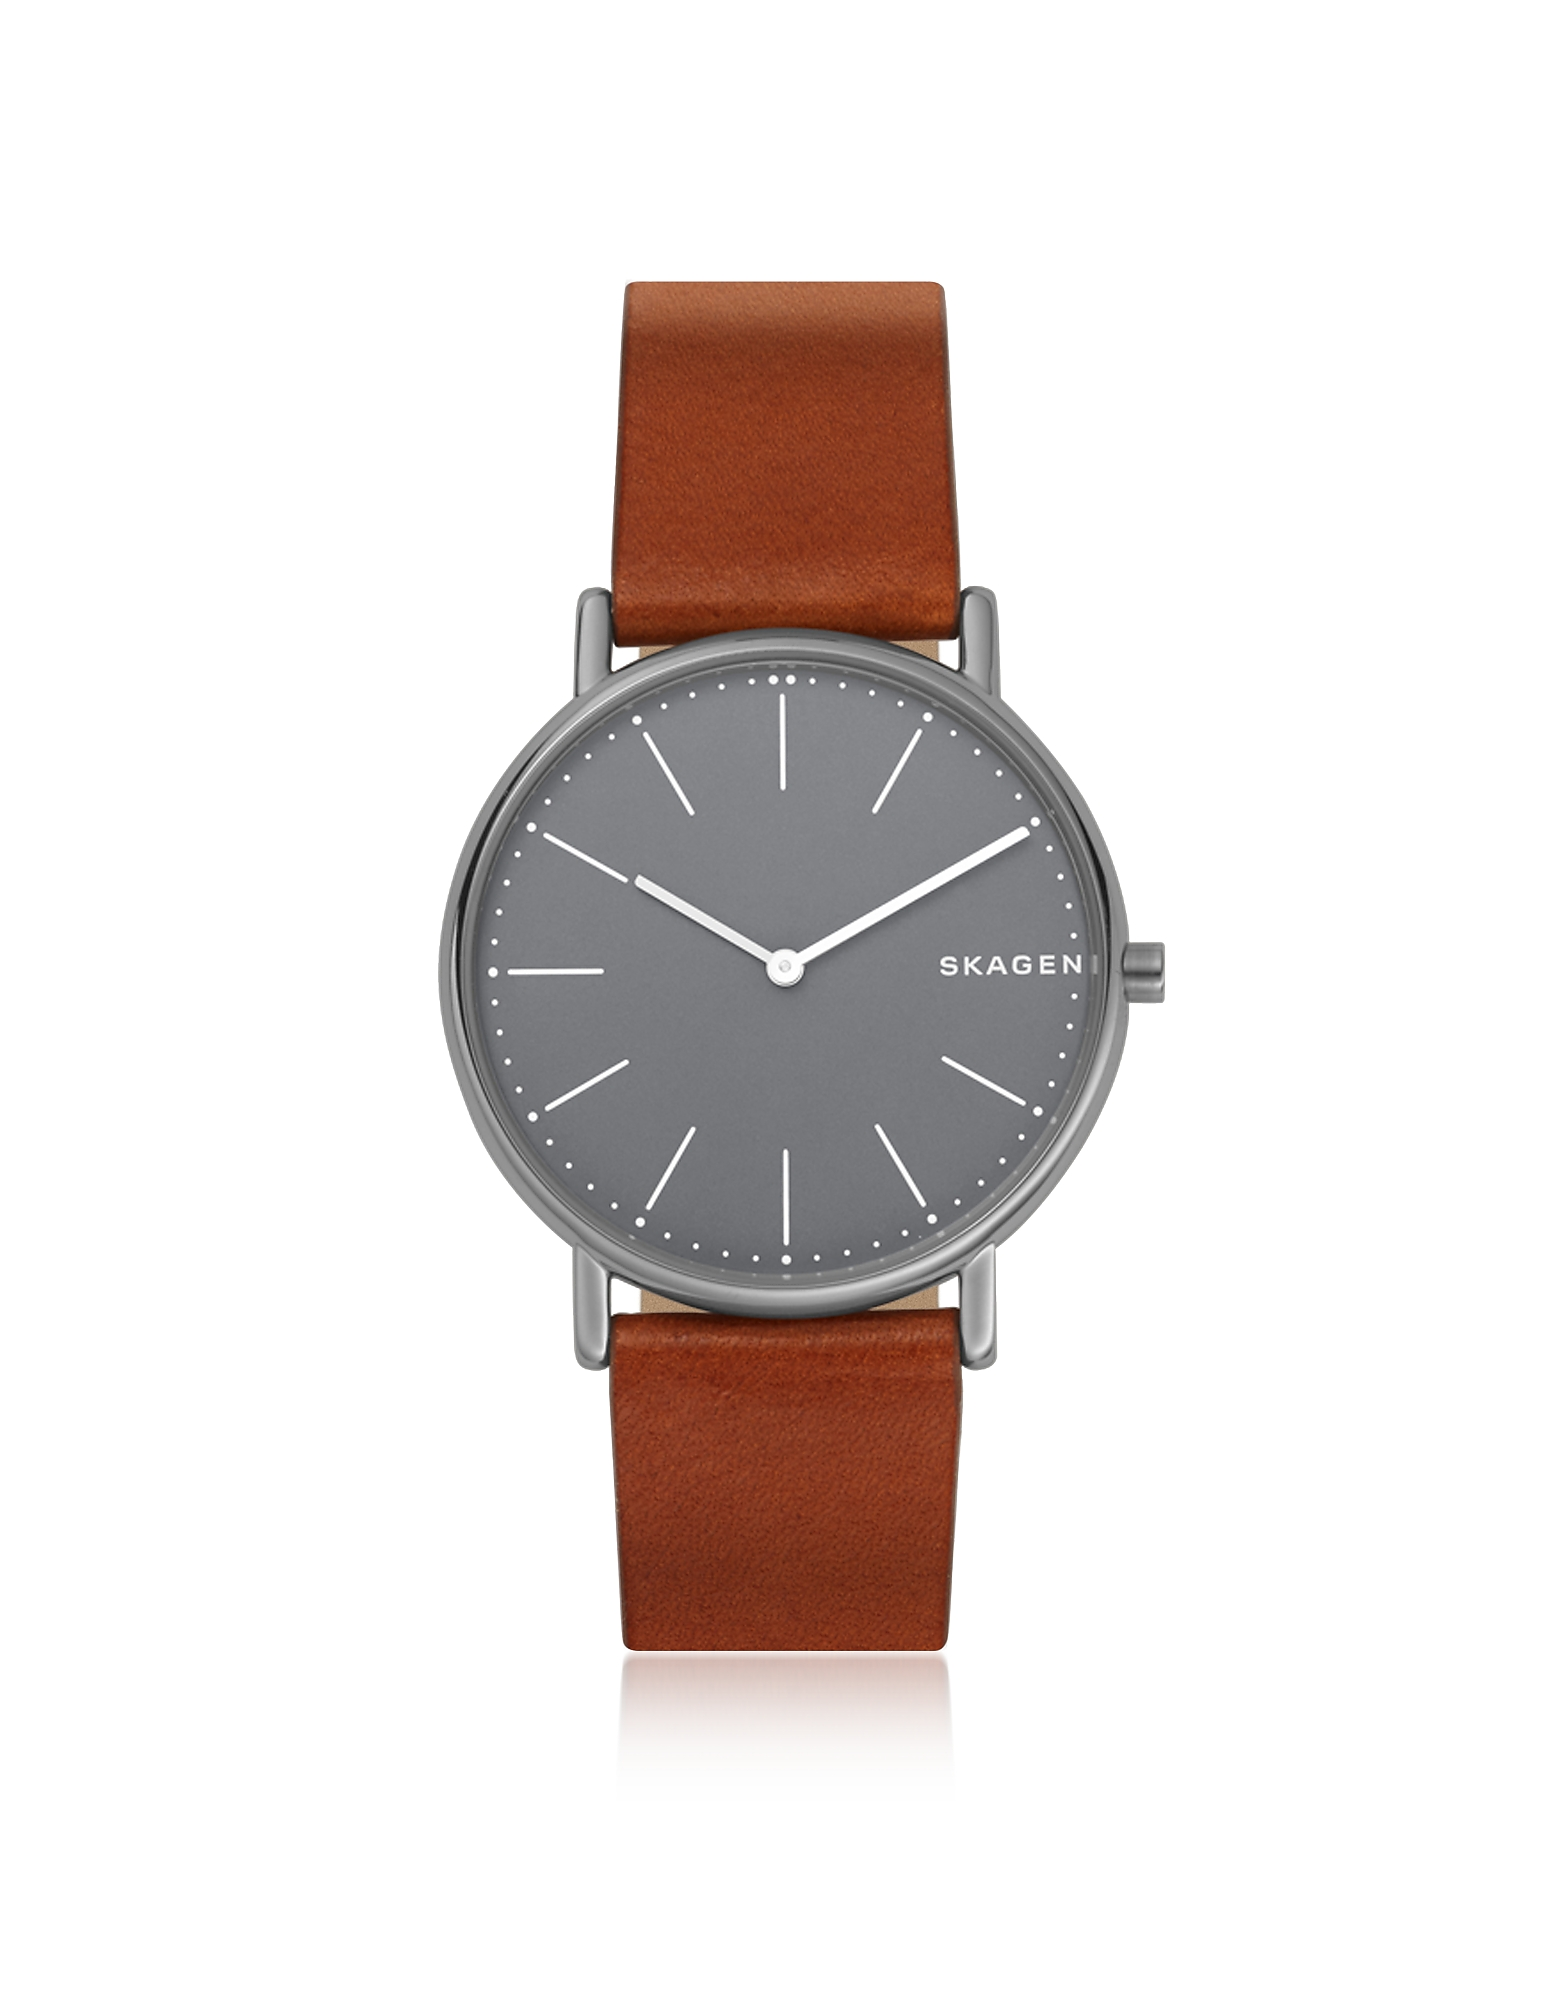 Skagen Men's Watches, Signatur Slim Titanium and Cognac Leather Men's Watch